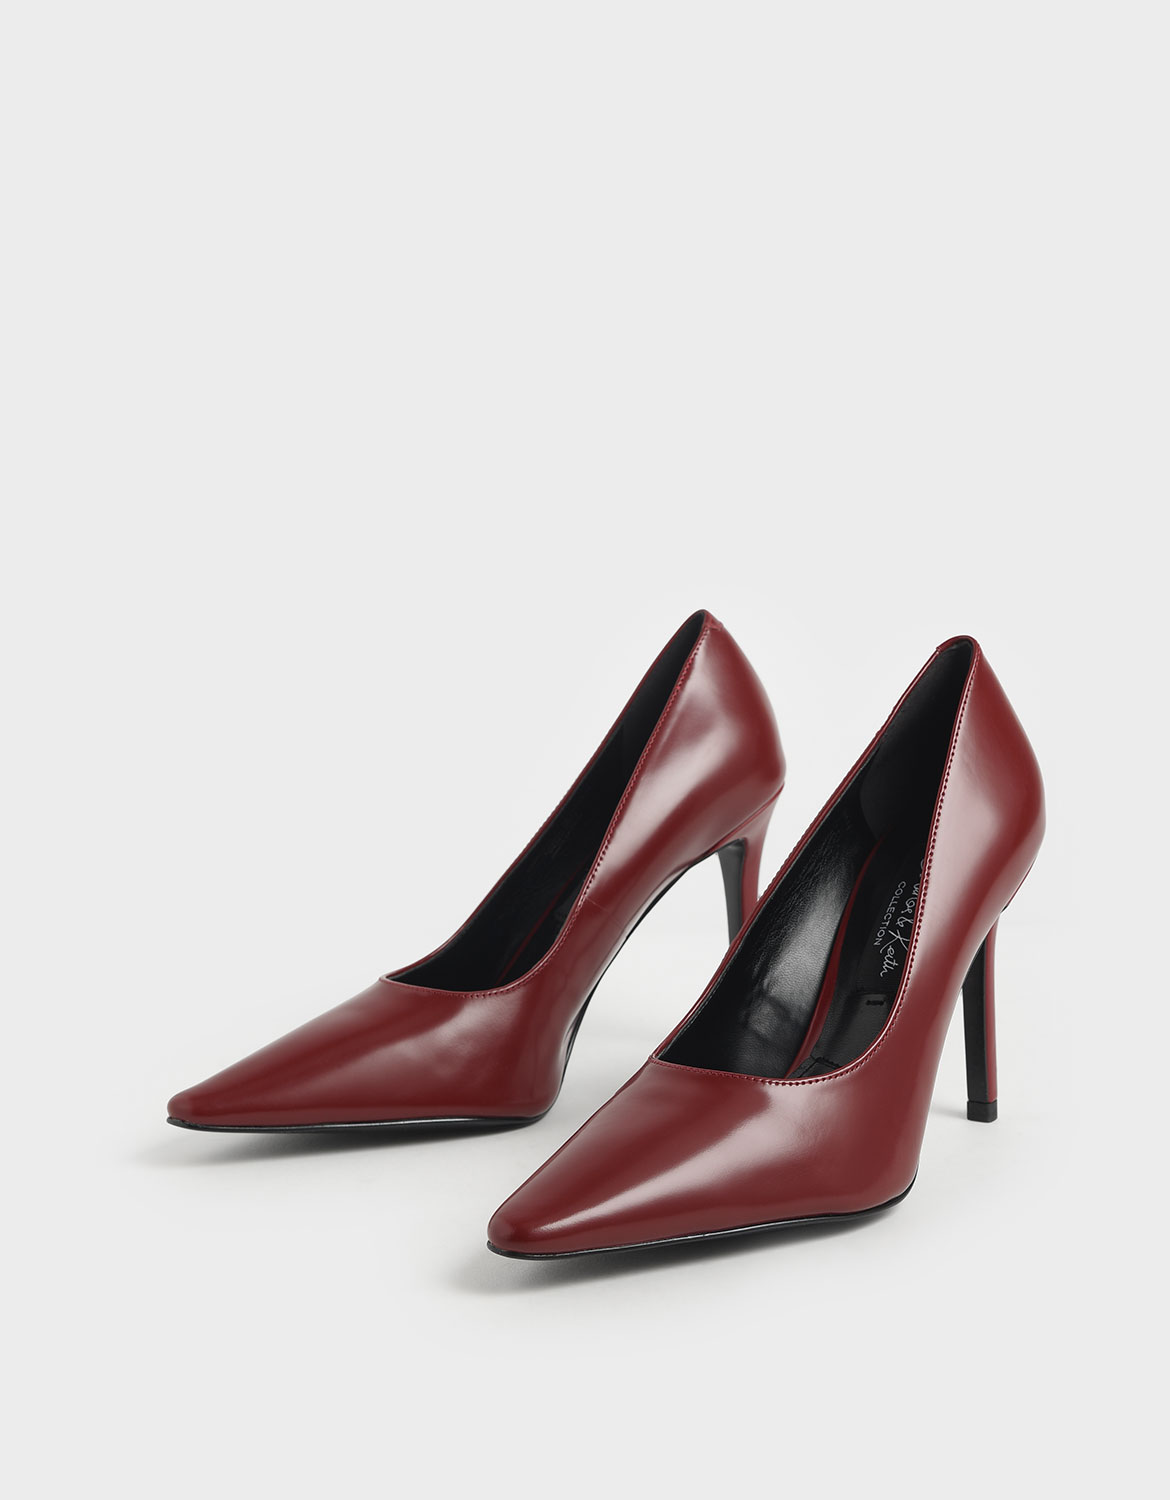 Women's red leather stiletto pumps – CHARLES & KEITH